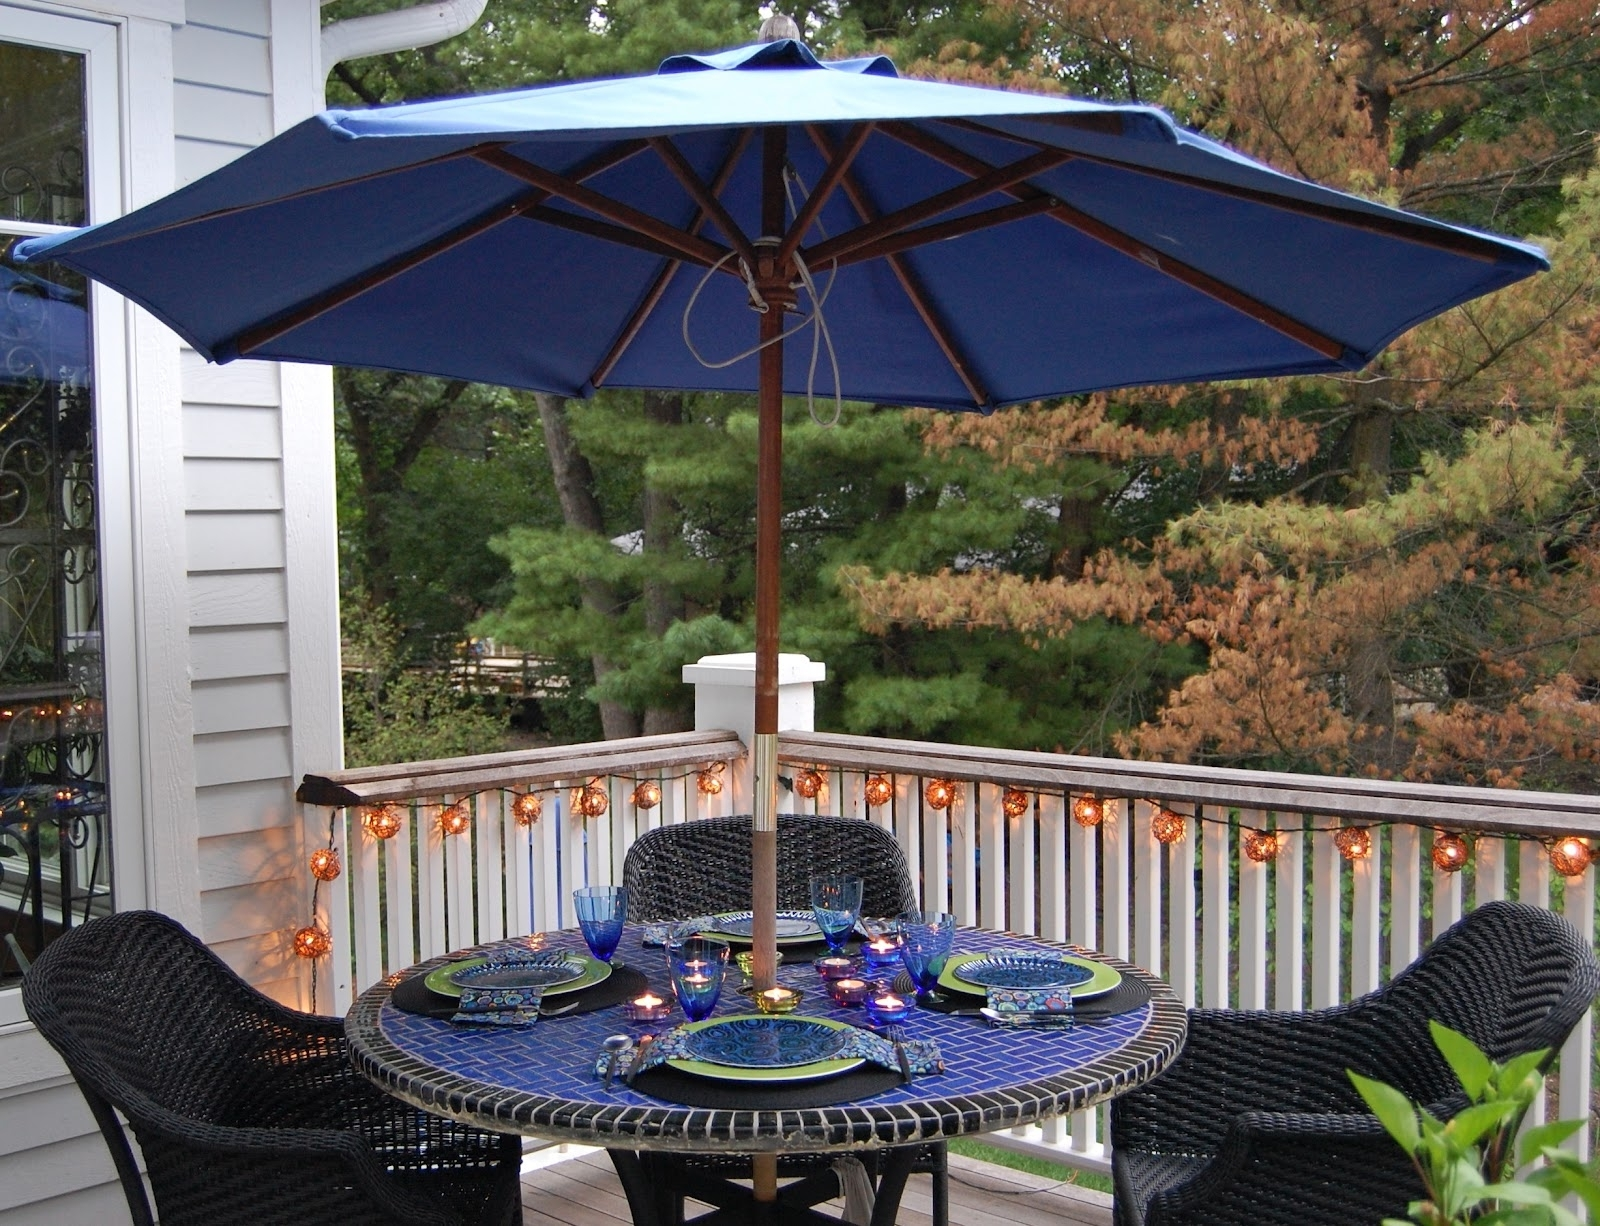 Fashionable Patio Furniture Sets With Umbrellas Regarding Lovable Patio Furniture Sets With Umbrella Patio Set With Umbrella (Gallery 9 of 20)